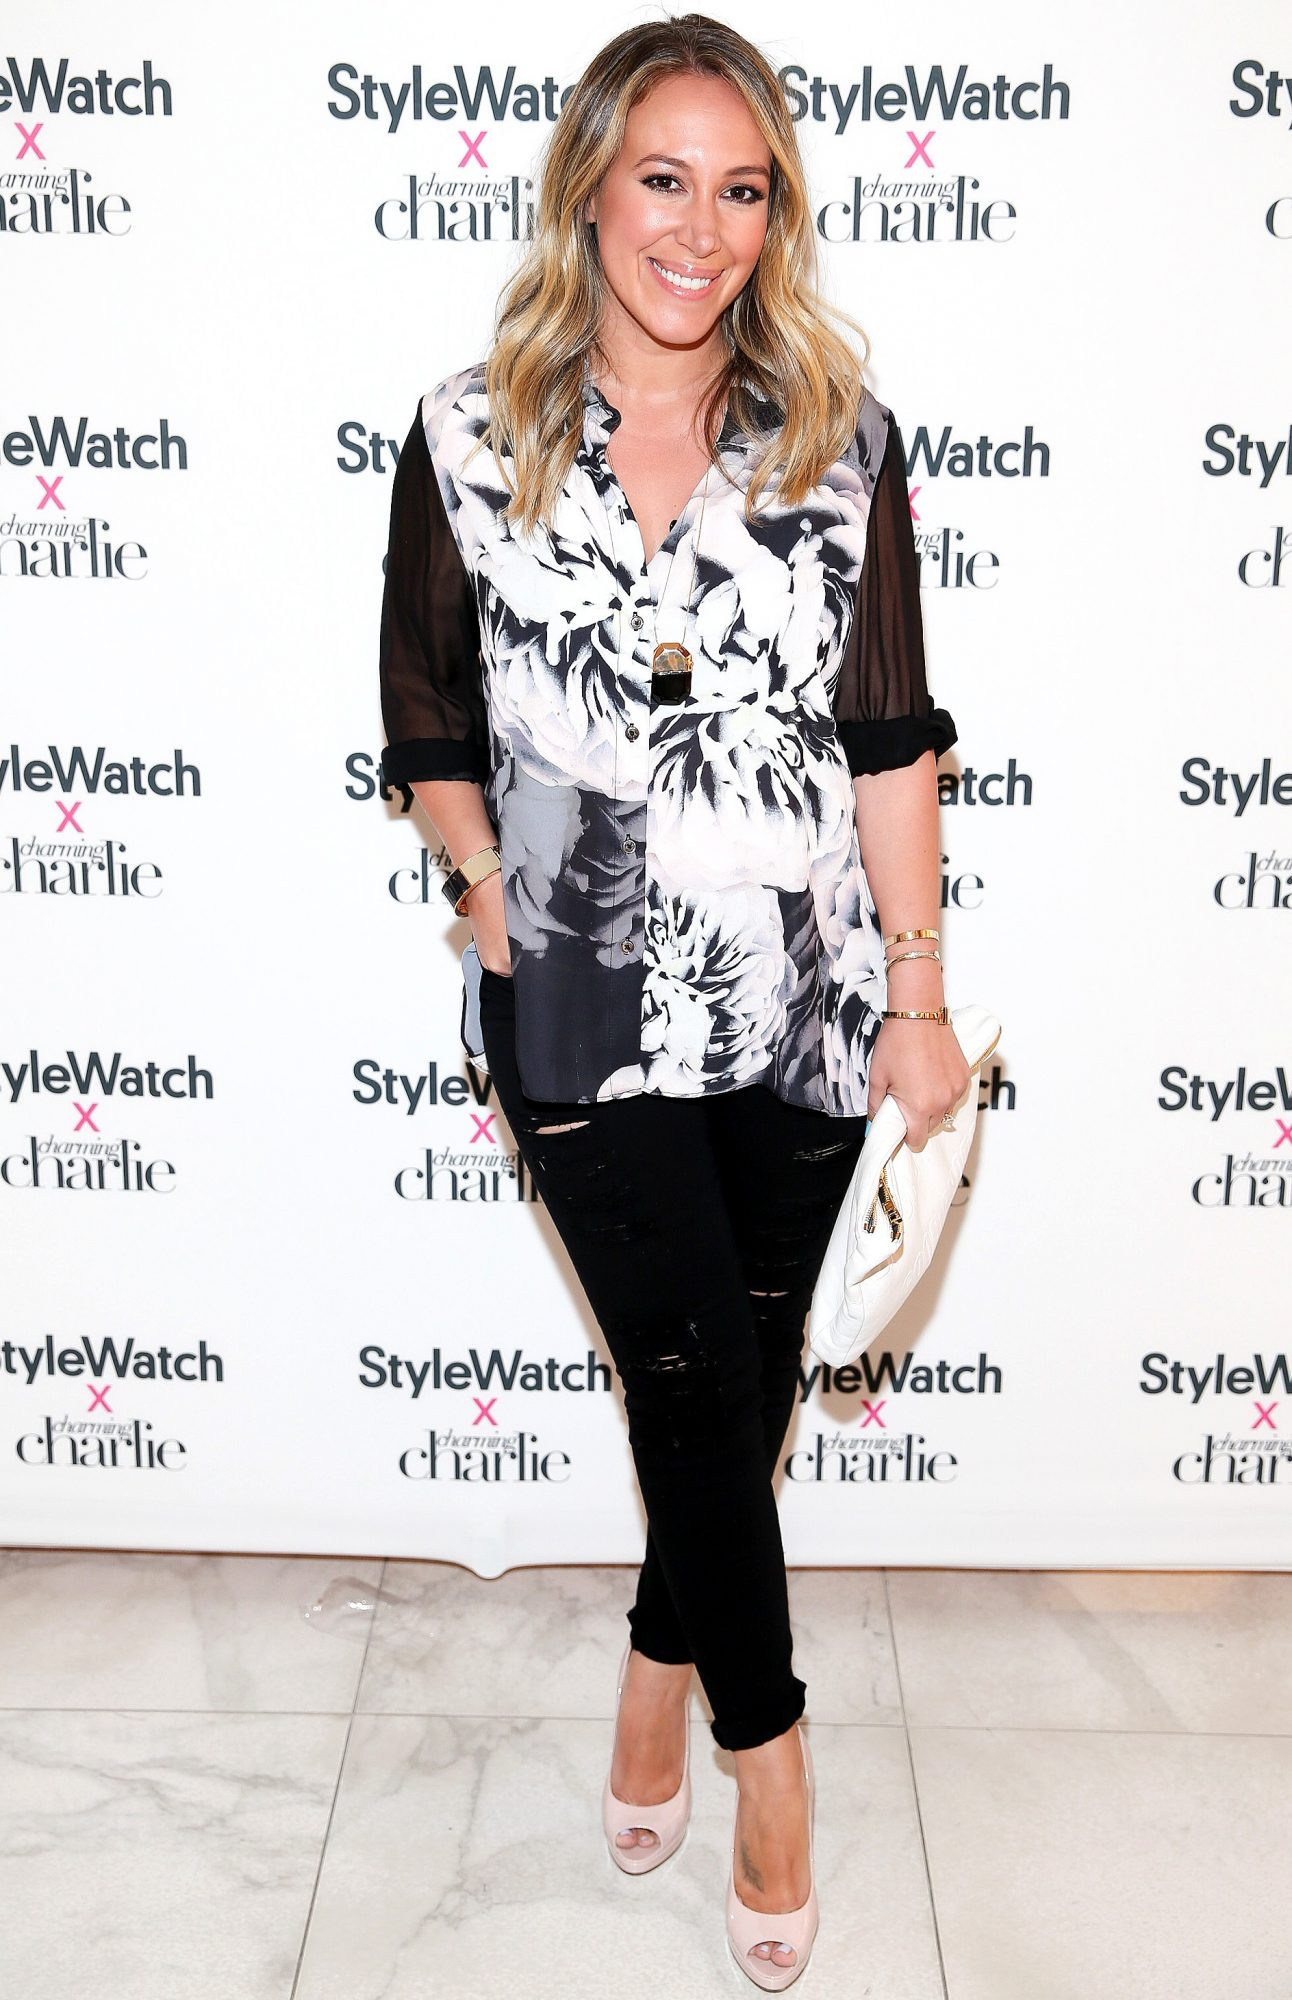 StyleWatch X Charming Charlie Launch Event